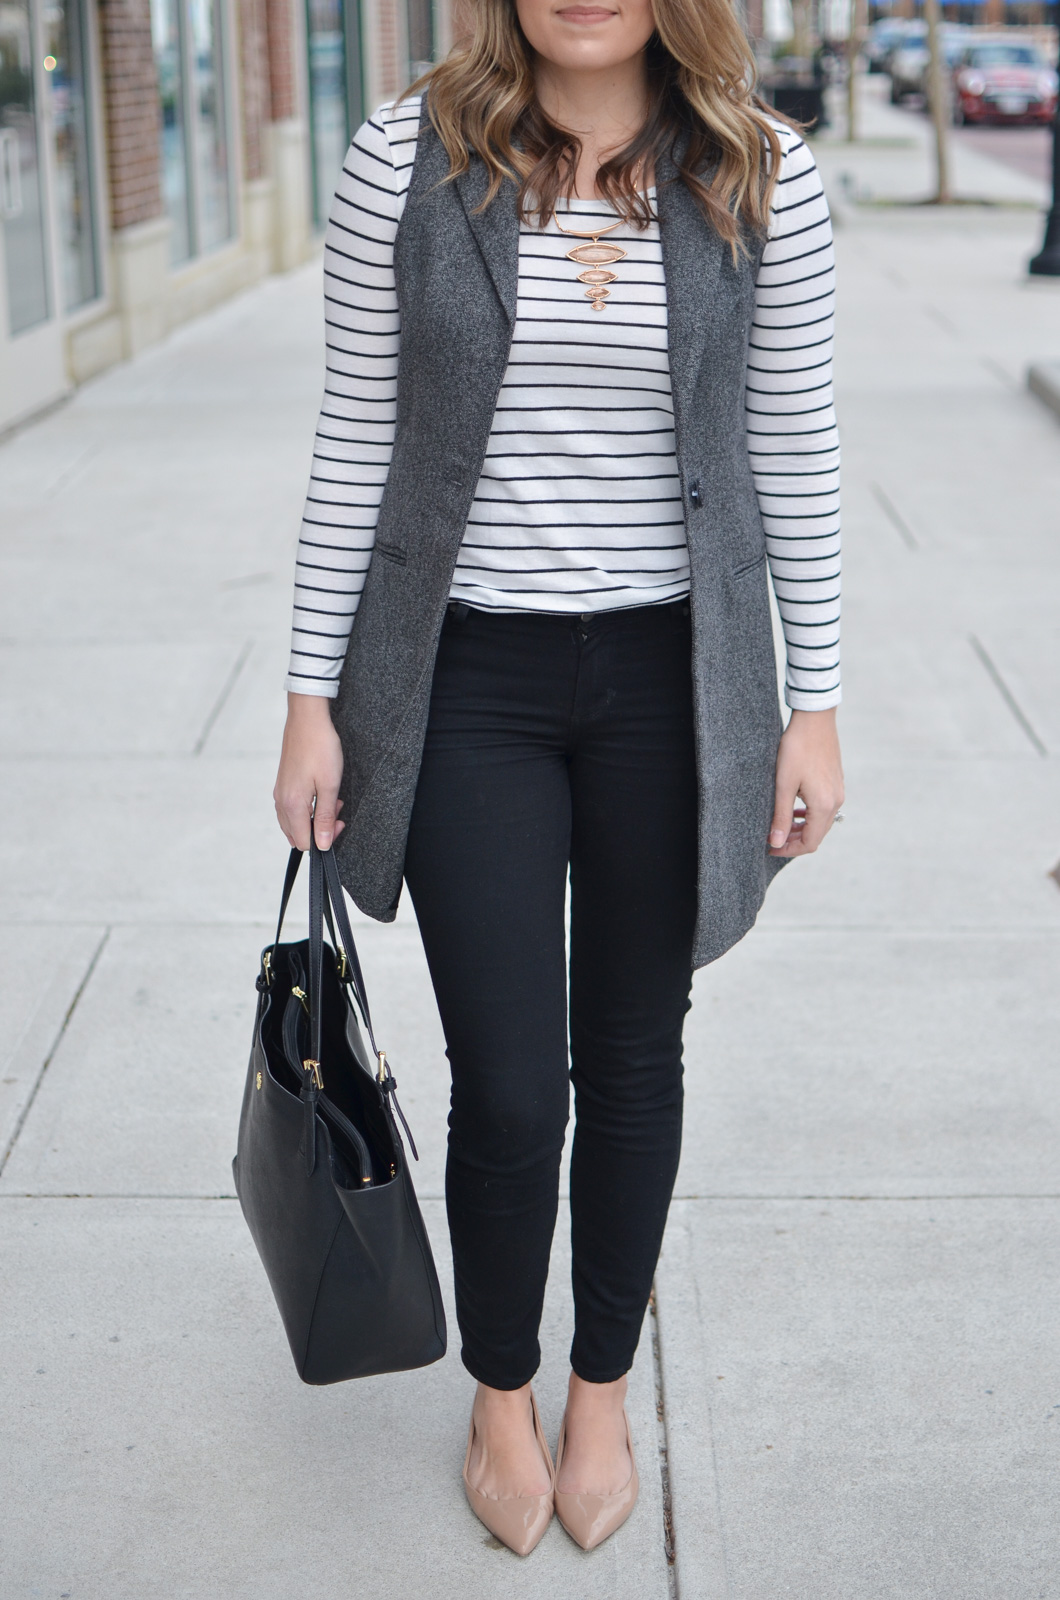 how to wear a long vest - striped tee, long gray vest, black jeans, and nude flats. Want more cute casual outfits? Head to bylaurenm.com!